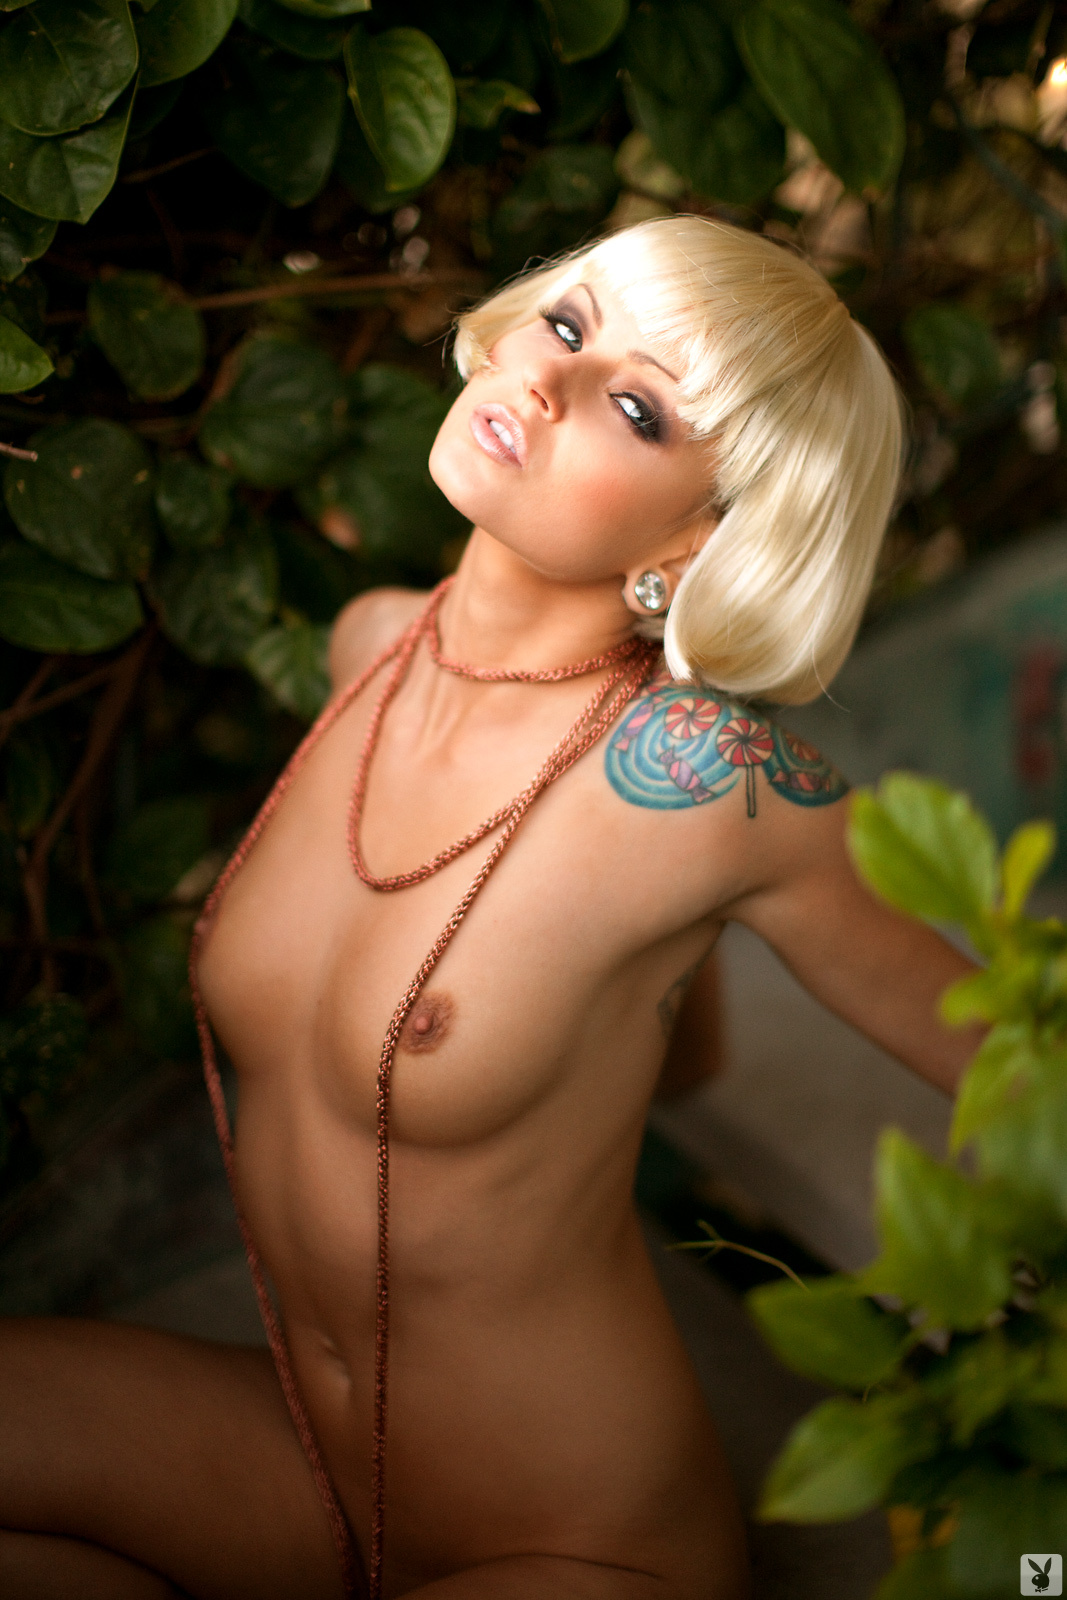 veronica-lavery-blonde-naked-playboy-07